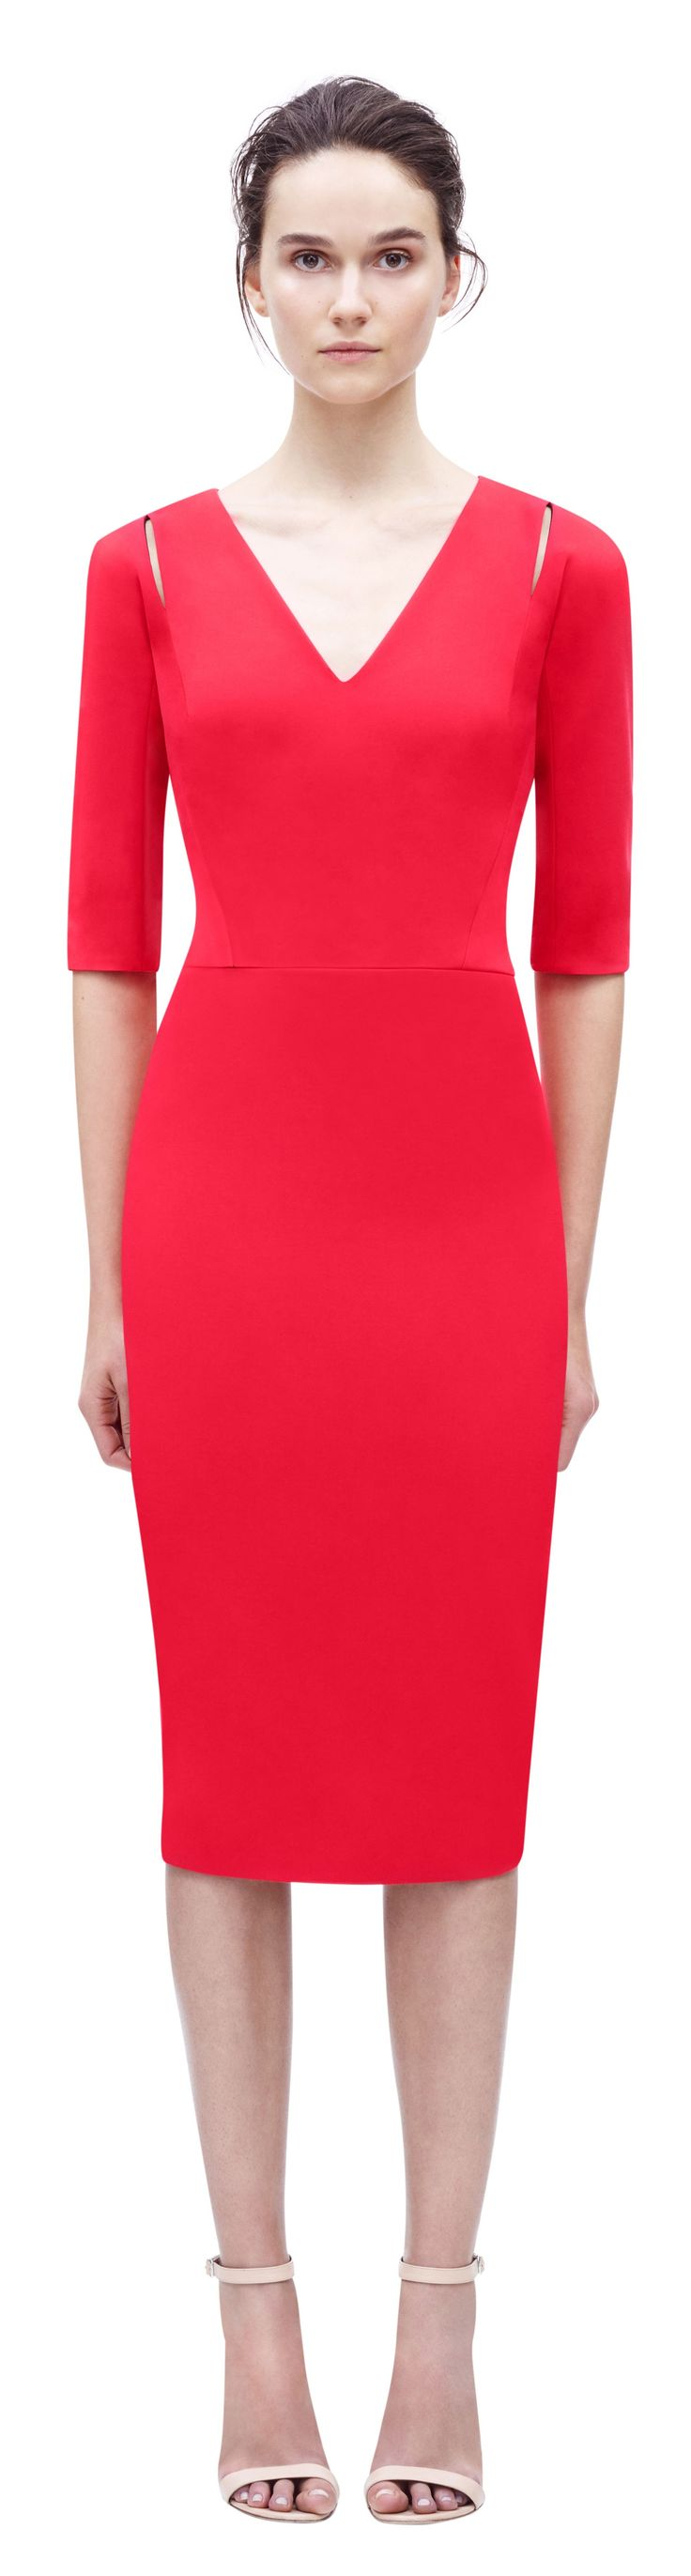 Victoria Beckham RTW 2016 spring summer women fashion outfit clothing style apparel @roressclothes closet ideas